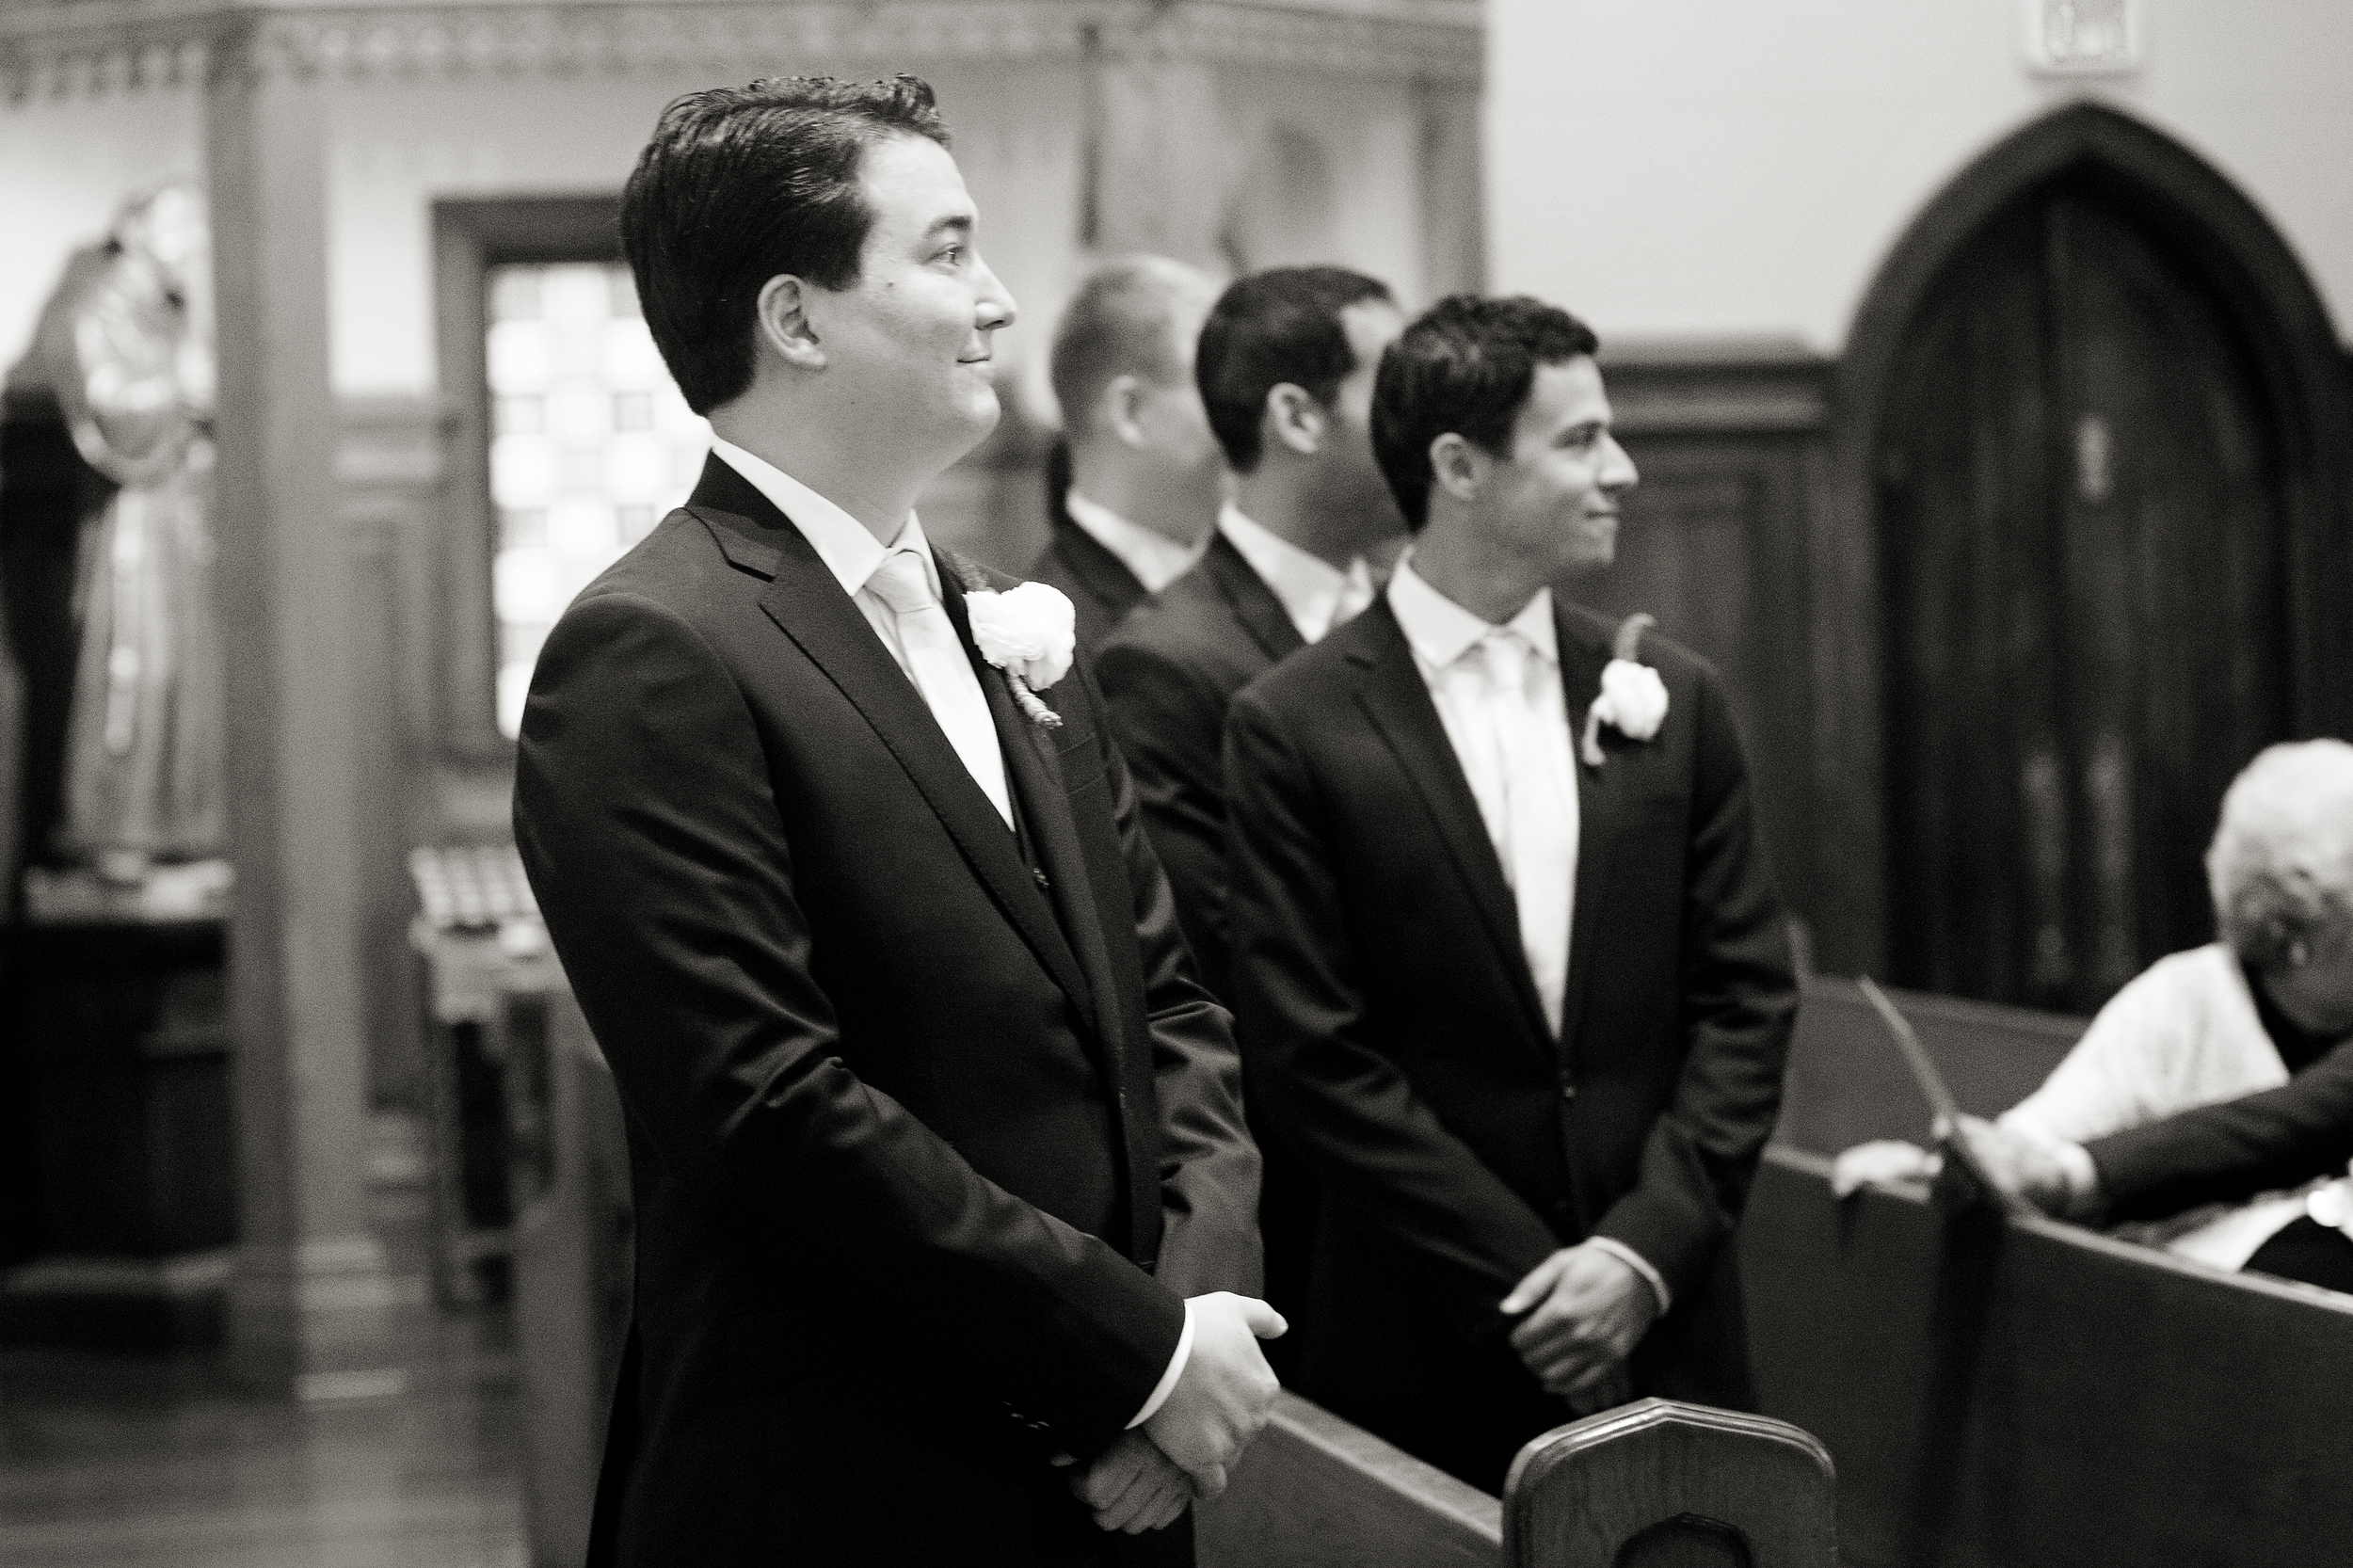 Photo by Brenna Larson Photography, taken at my wedding while I walked down the aisle!